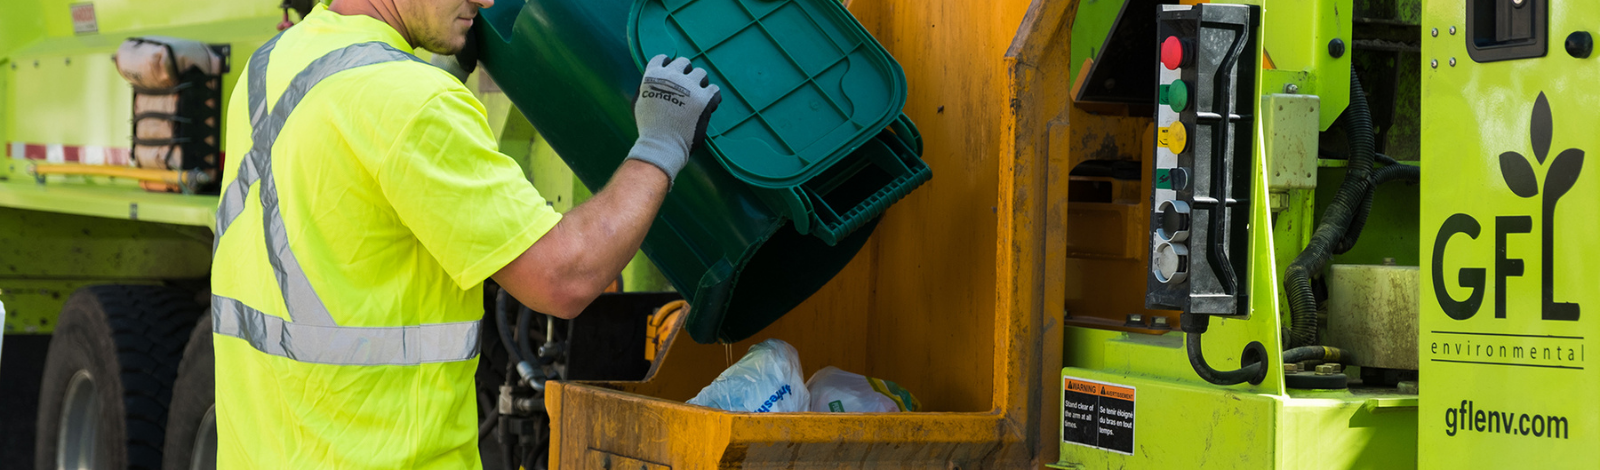 removing compost from green bin